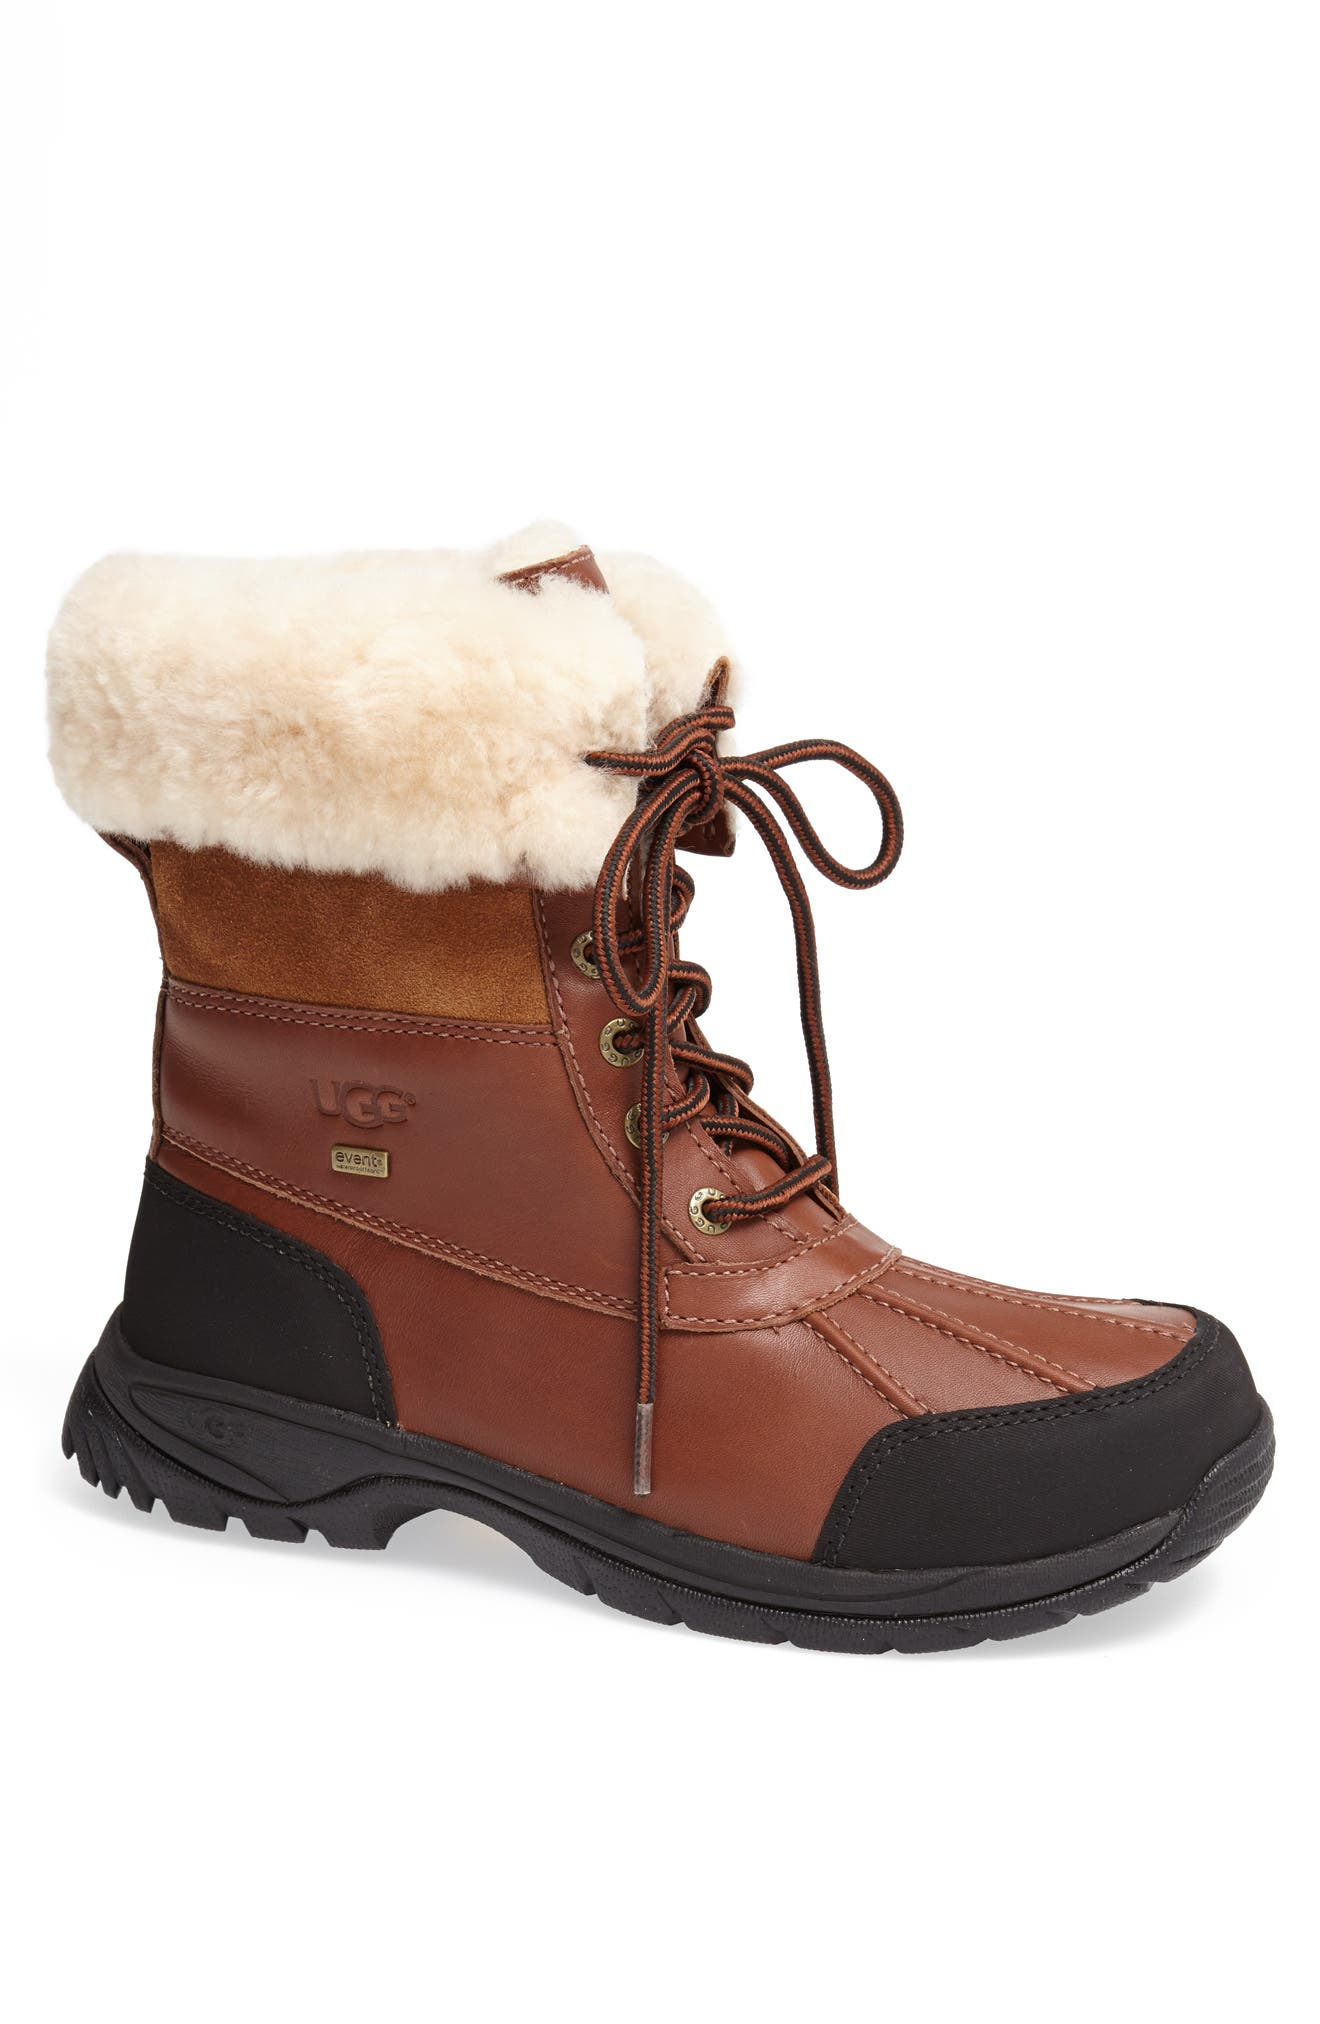 Butte Waterproof Boot,                         Main,                         color, WORCHESTER